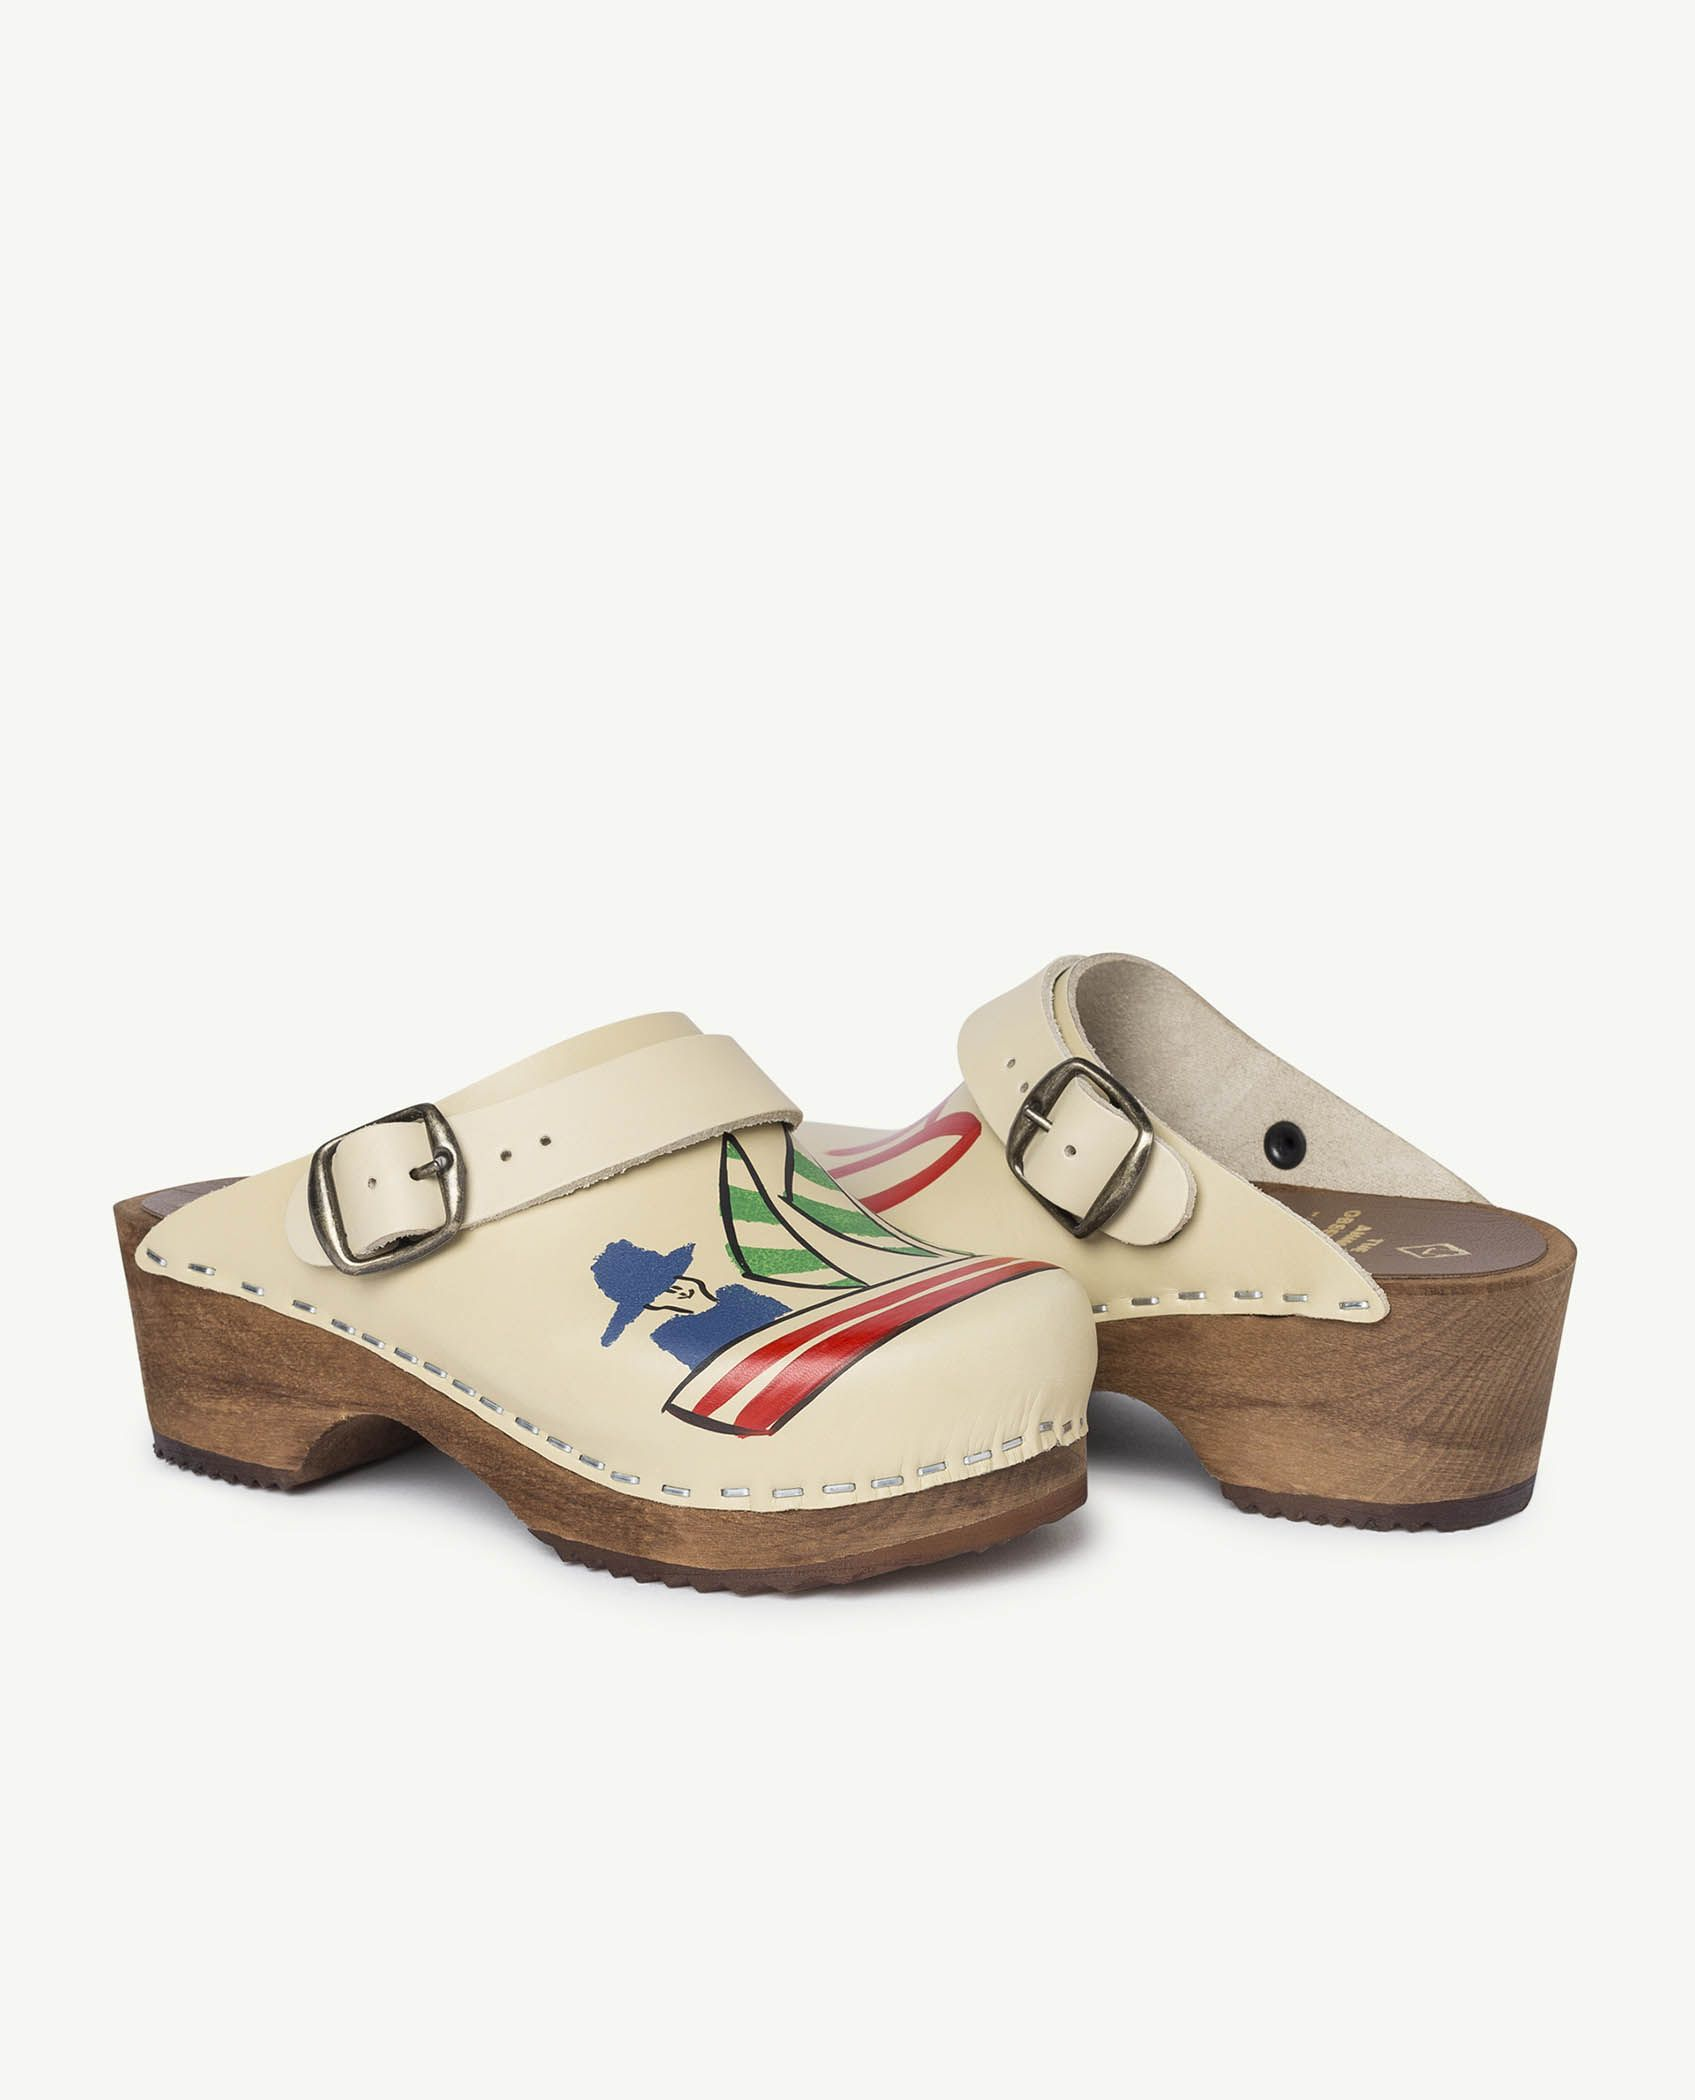 White Clogs Shoes img-1